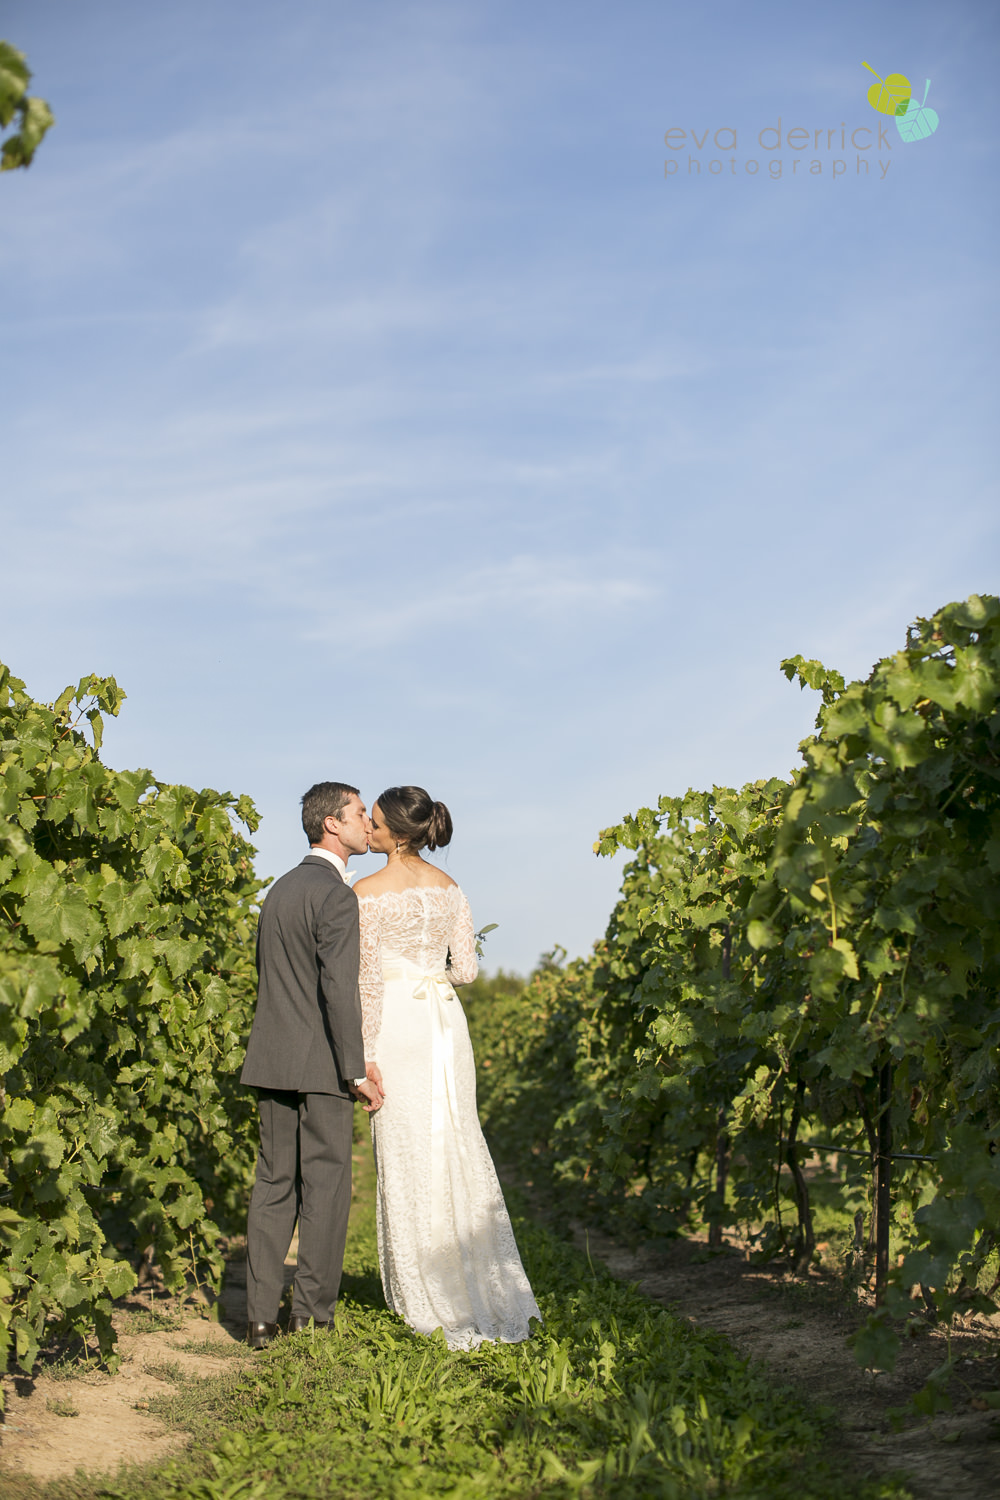 St-Catharines-Wedding-Photographer-Hernder-Estate-Wines-Niagara-Weddings-photography-by-Eva-Derrick-Photography-036.JPG